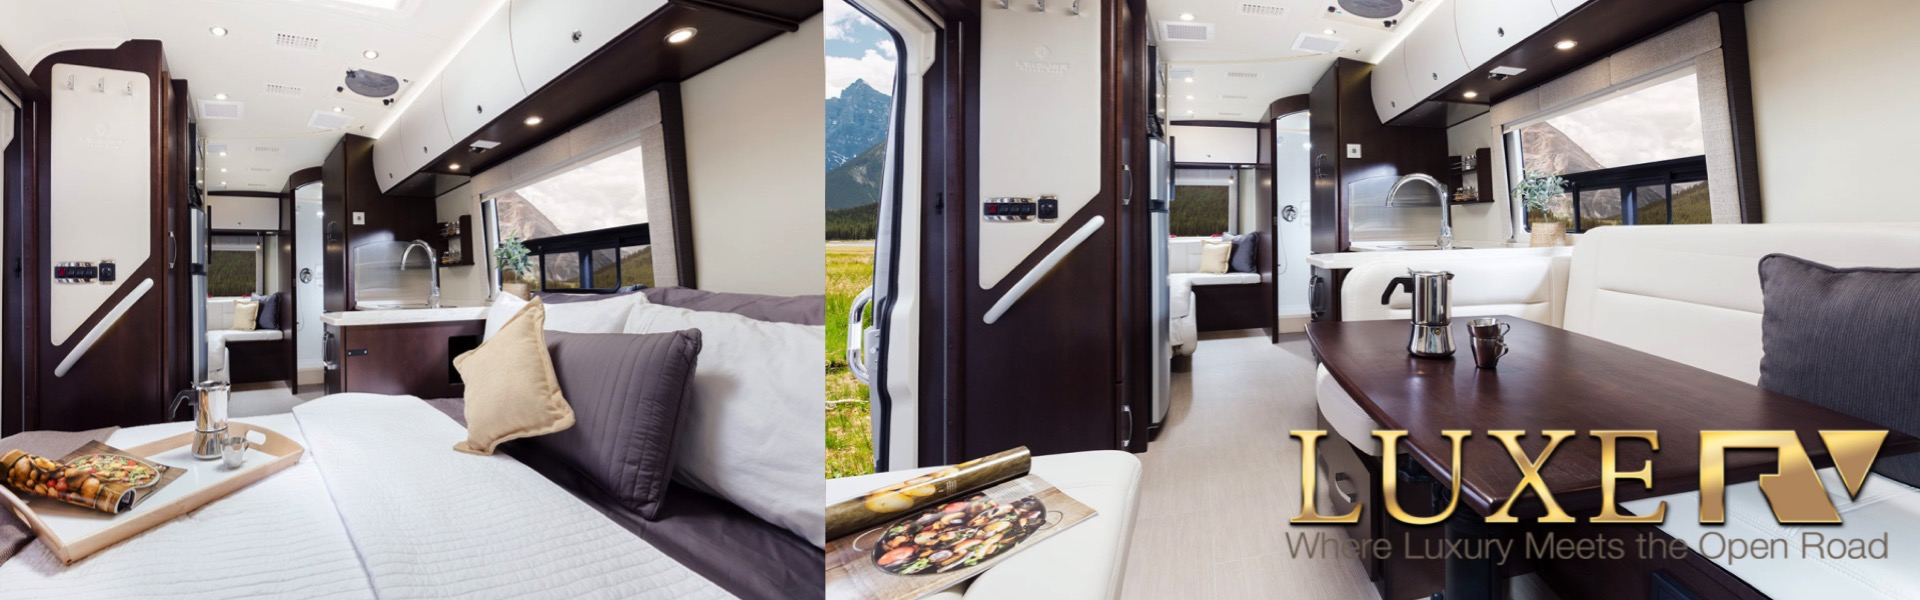 Luxury Rv For Rent Anywhere In California Los Angeles San Francisco With Free Pickup And Driver